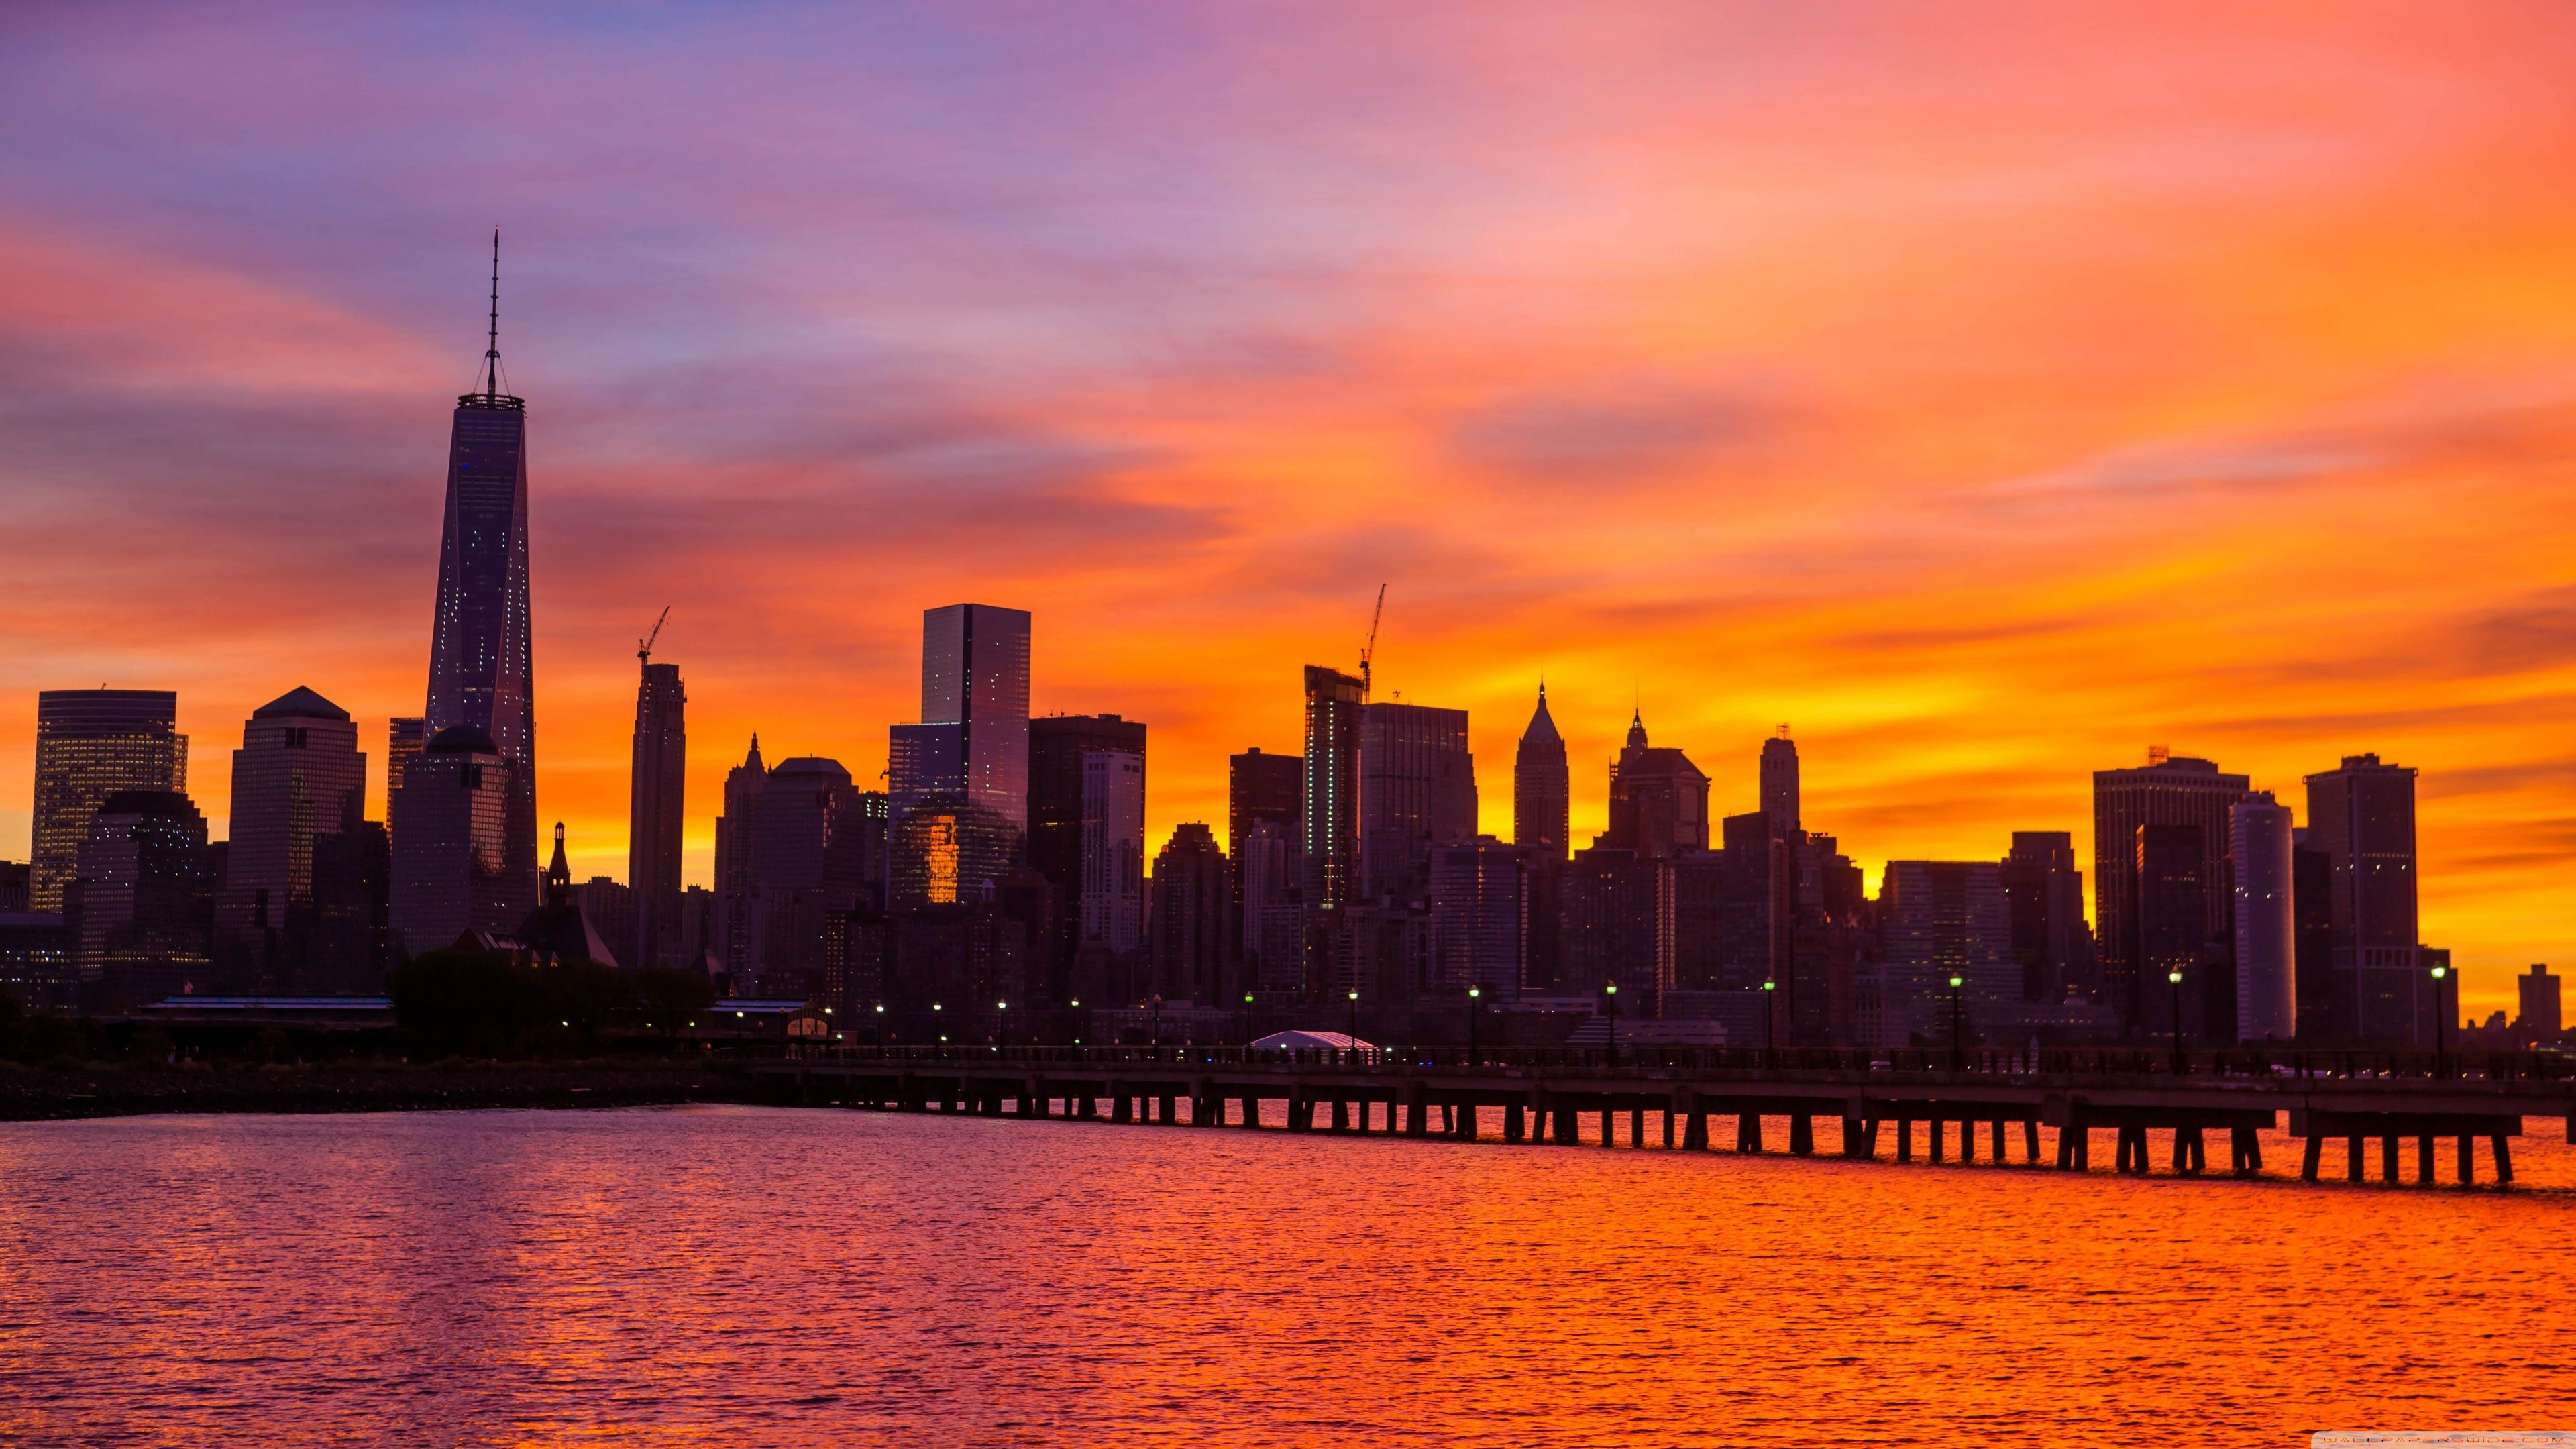 Sunrise desktop wallpapers top free sunrise desktop - New york skyline computer wallpaper ...